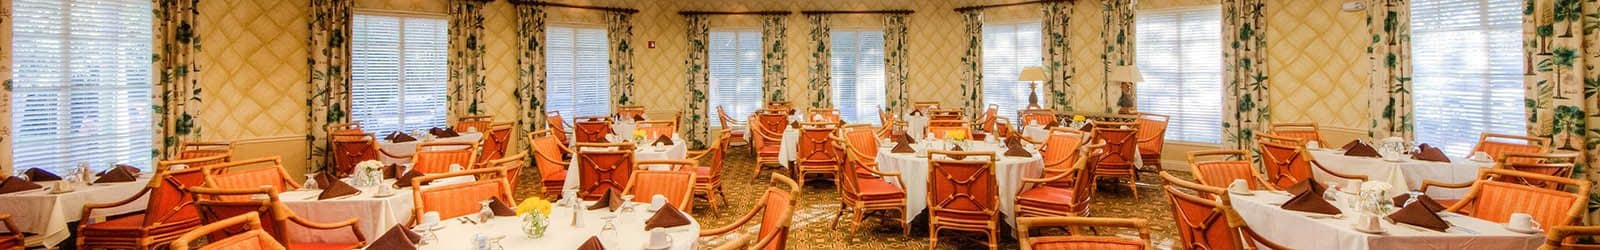 Senior living options at the senior living community in Tampa